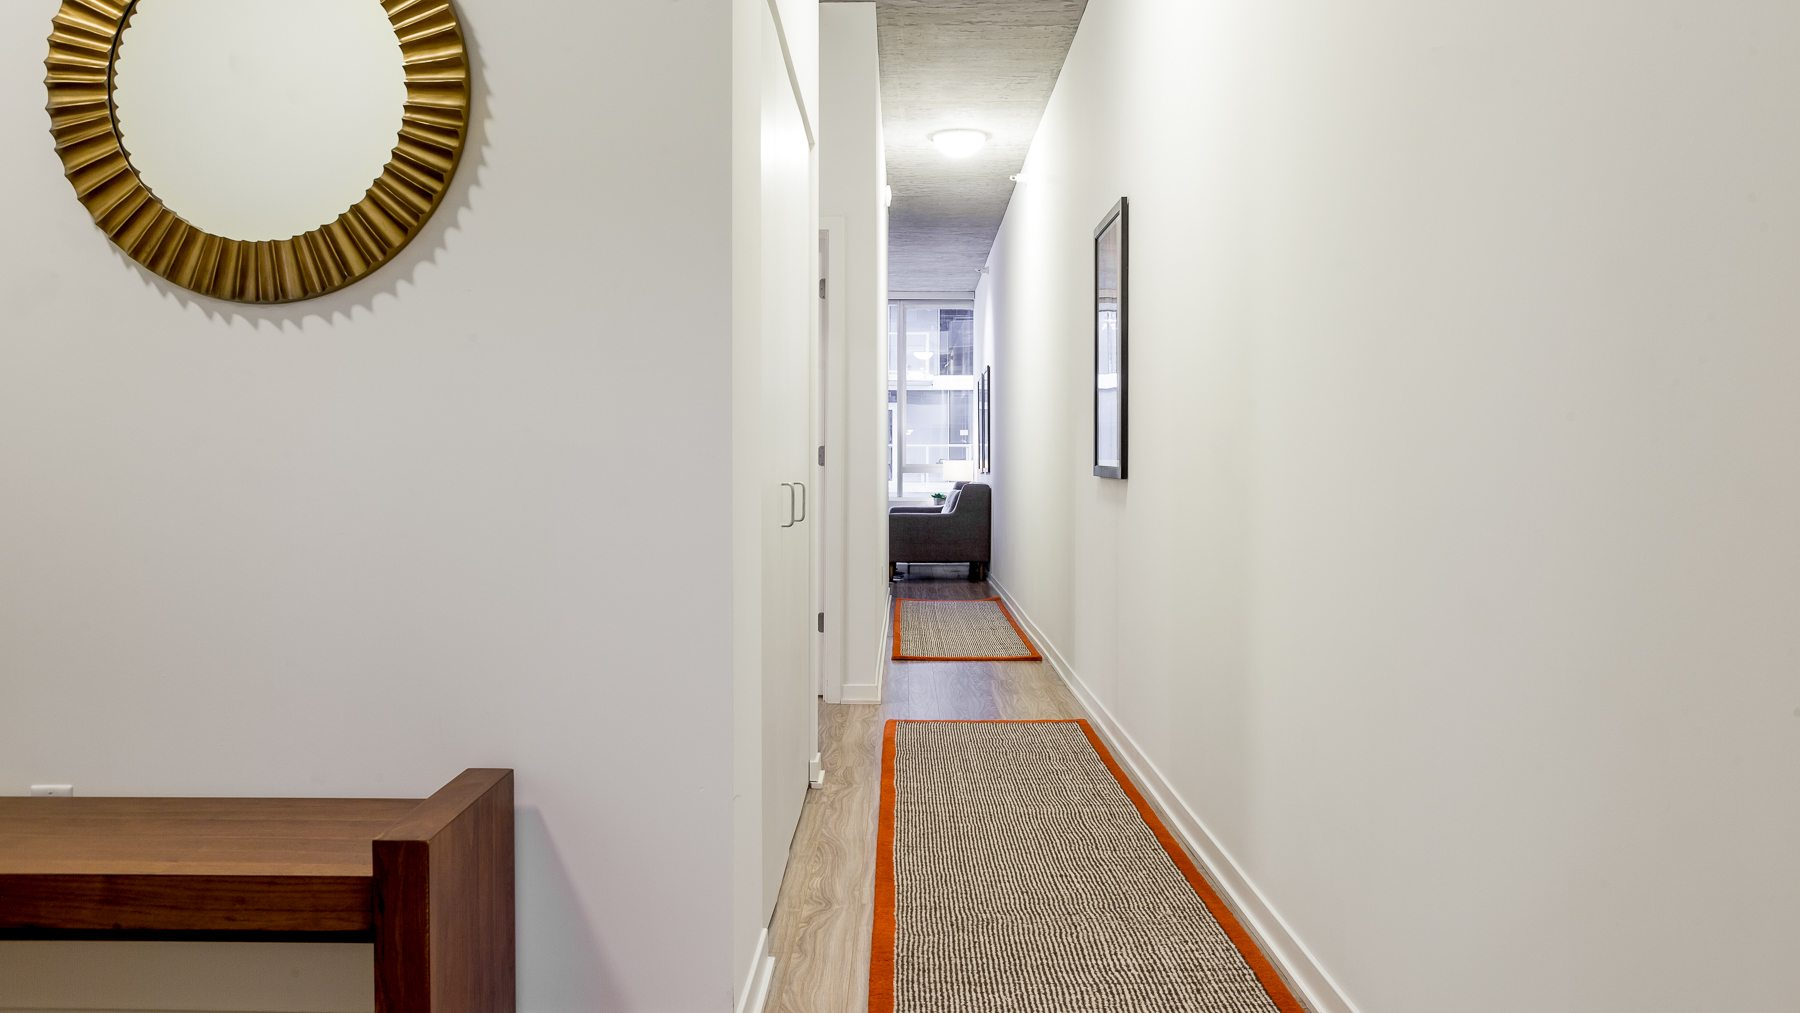 1333-south-wabash-luxury-apartments-south-loop-chicago-il-apartment-entry-hallway